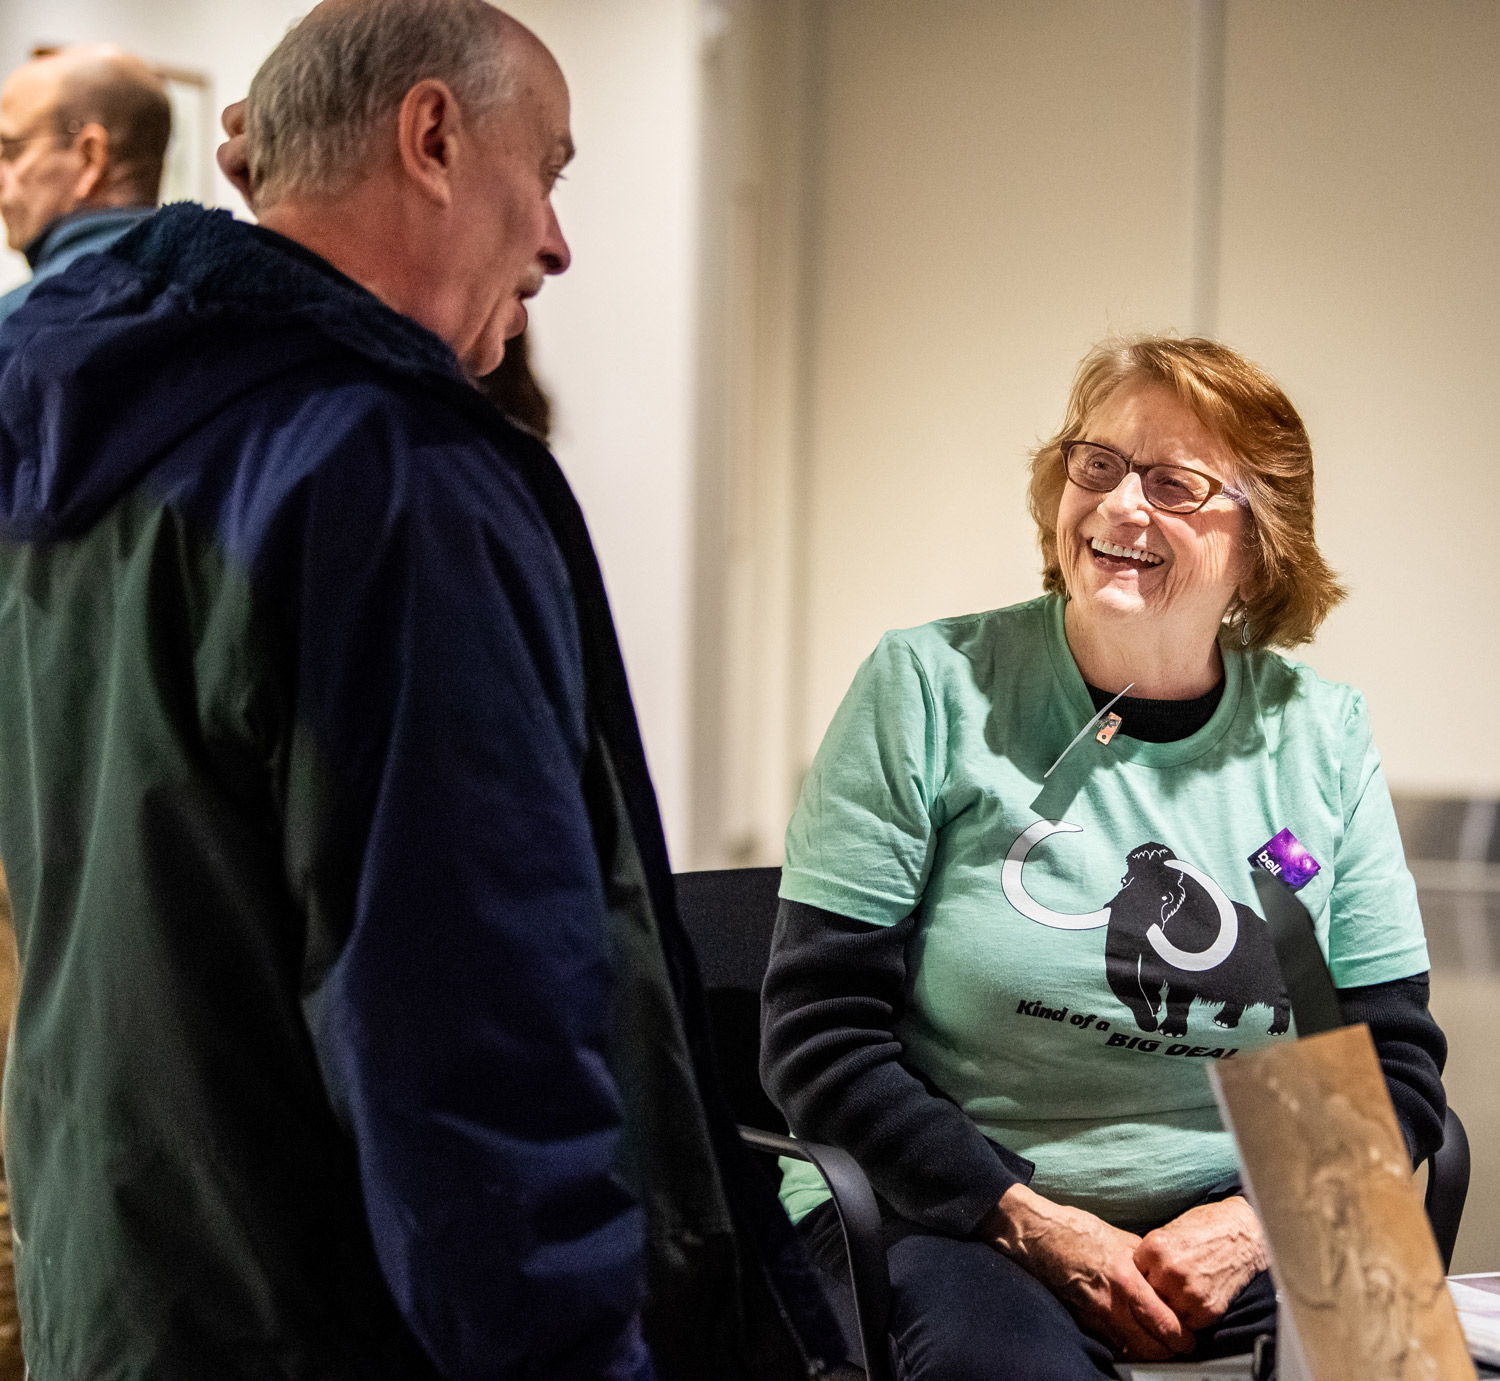 Bell Museum volunteer and visitor chat